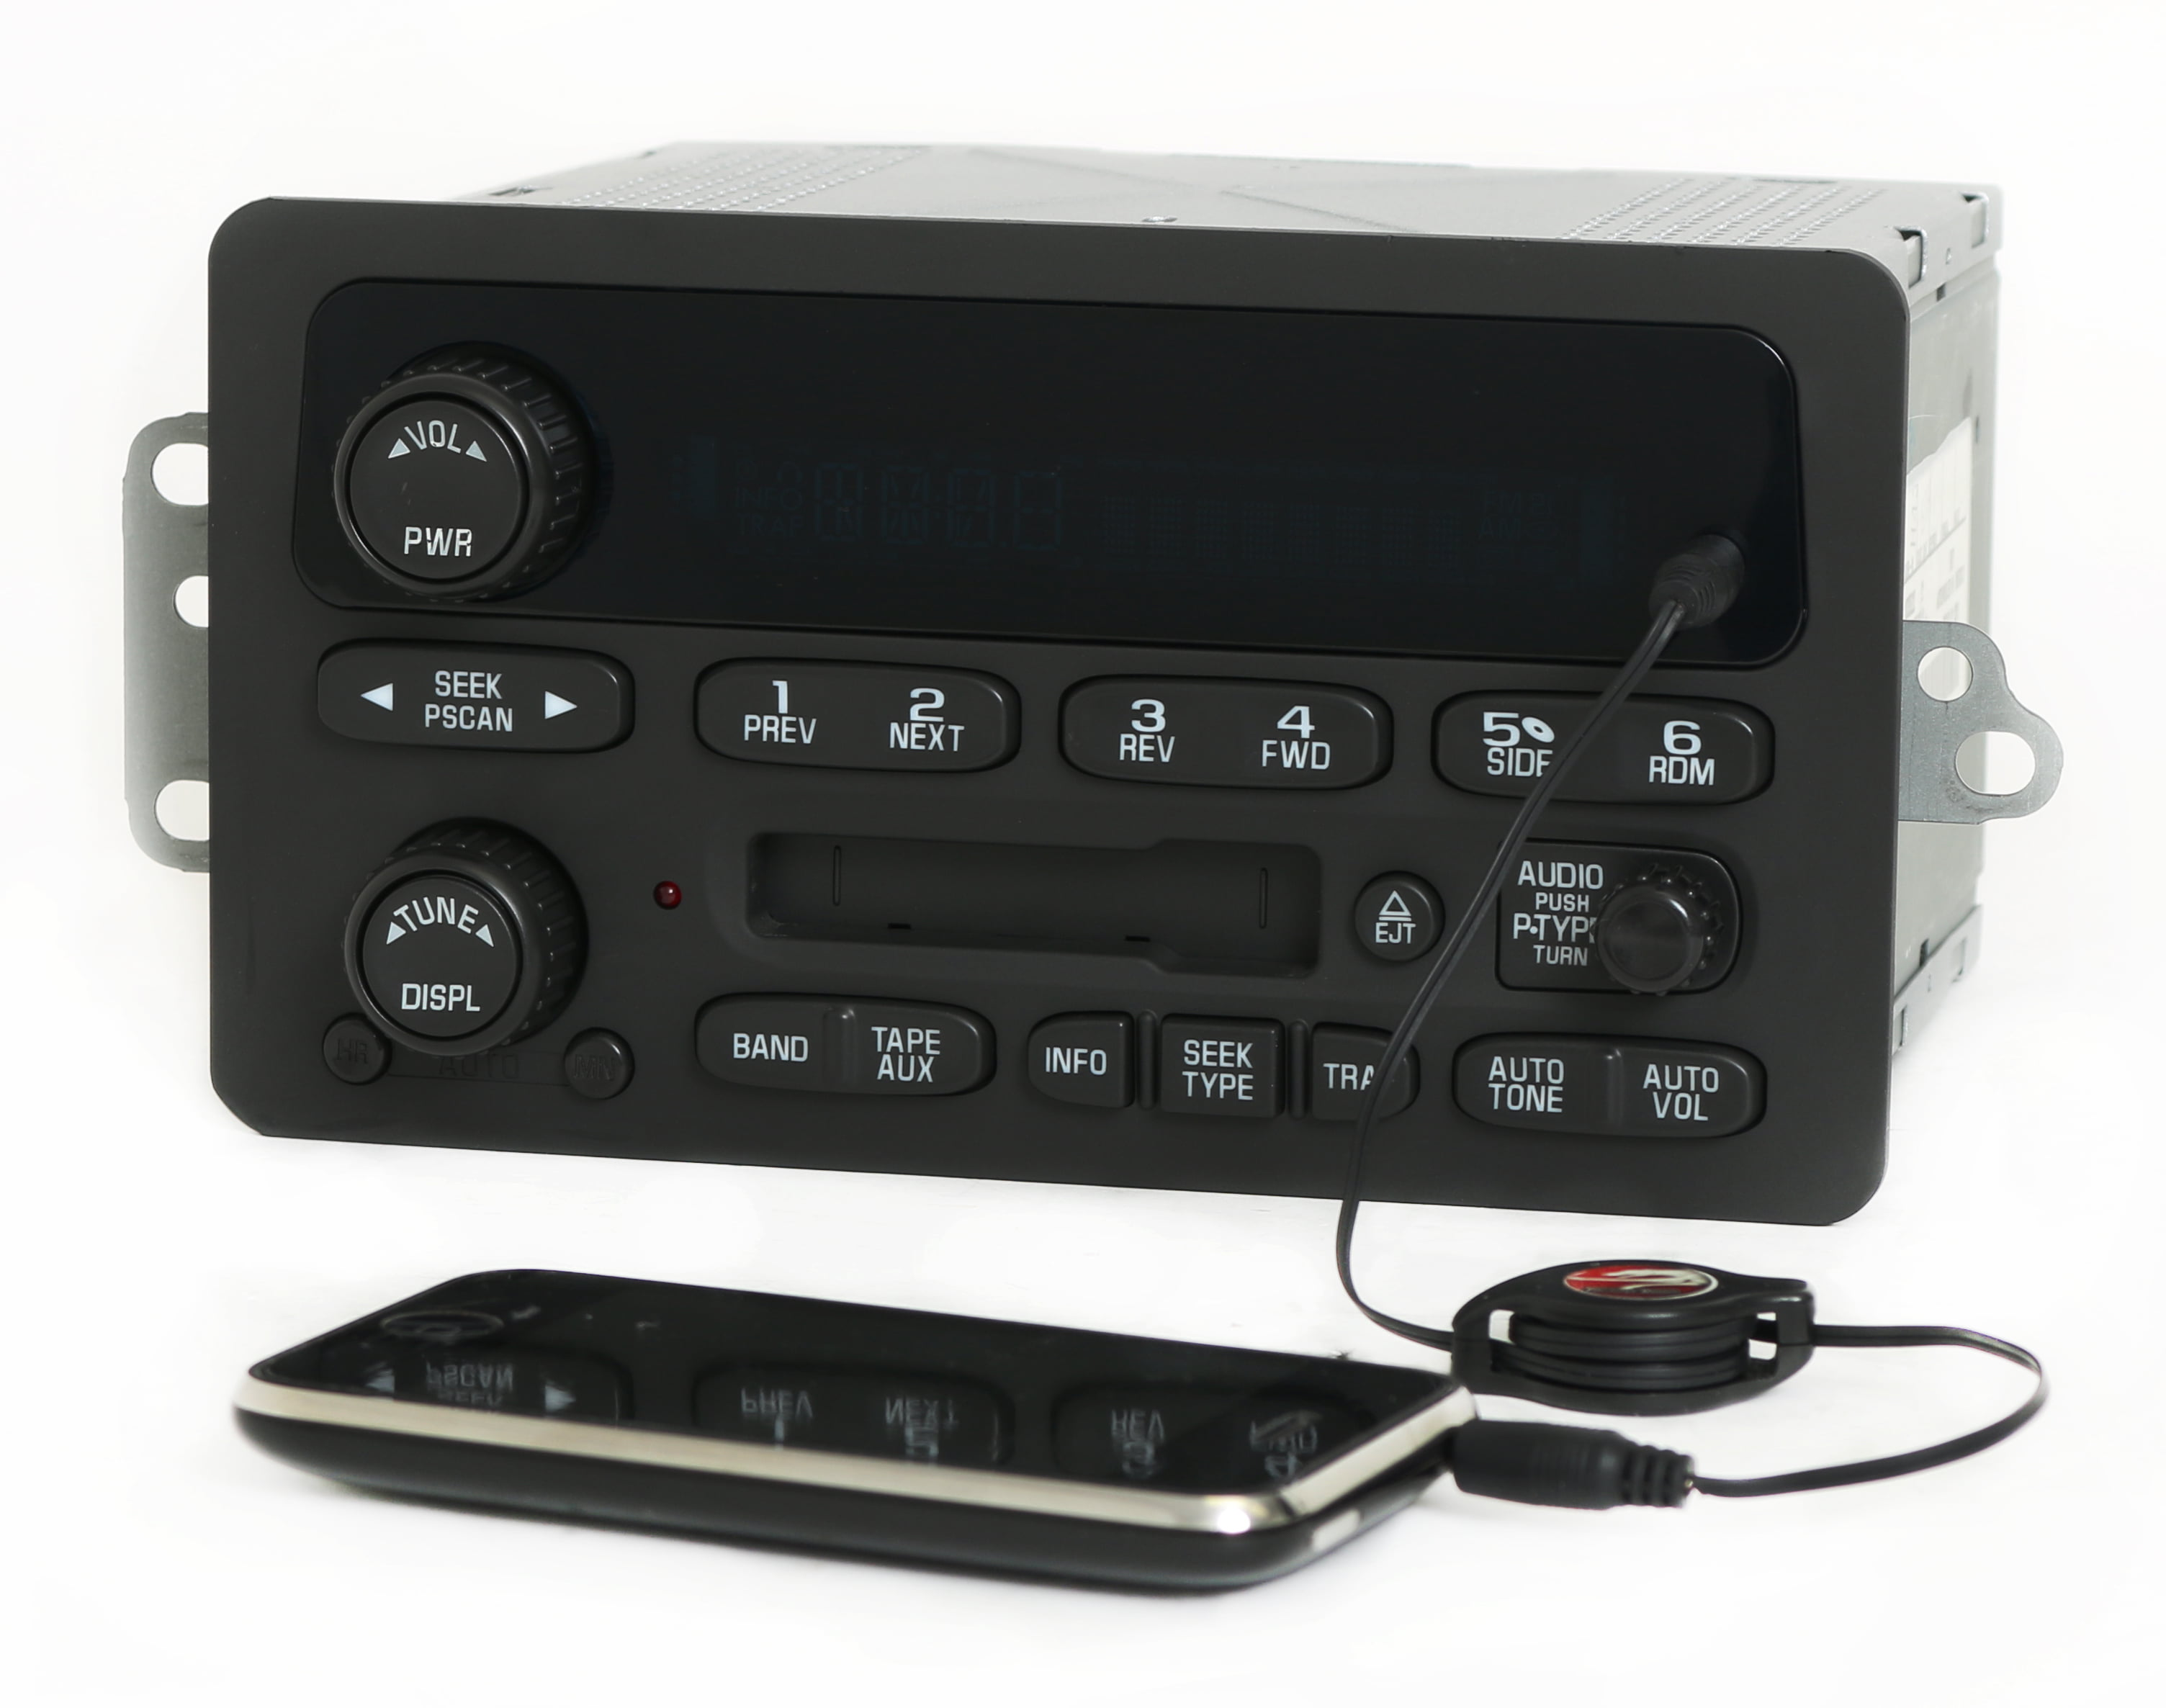 Chevy Impala Monte Carlo 2003-05 Radio AMFM Cassette Player w Aux Input 10335222 Refurbished by GM